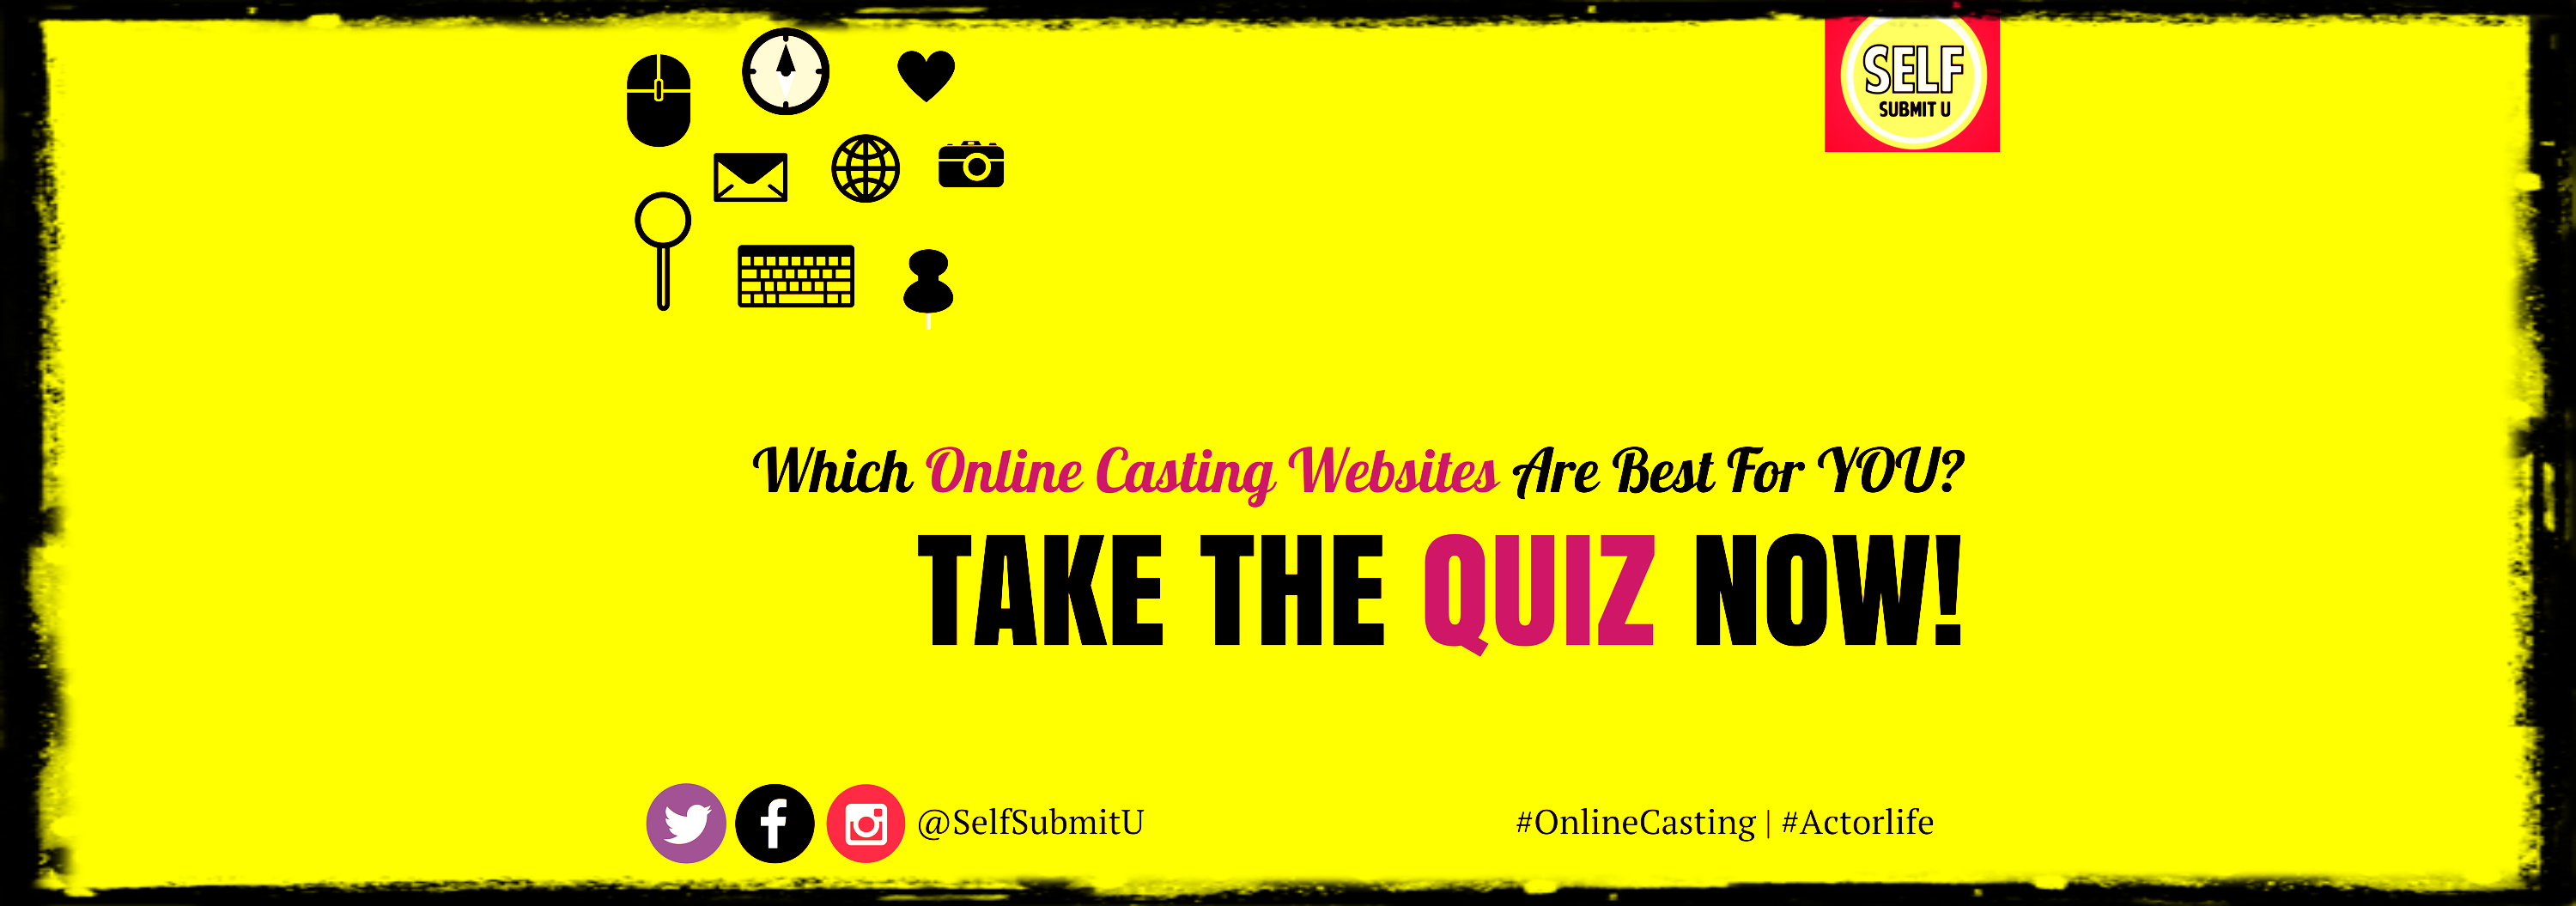 Best Online Casting Websites Quiz